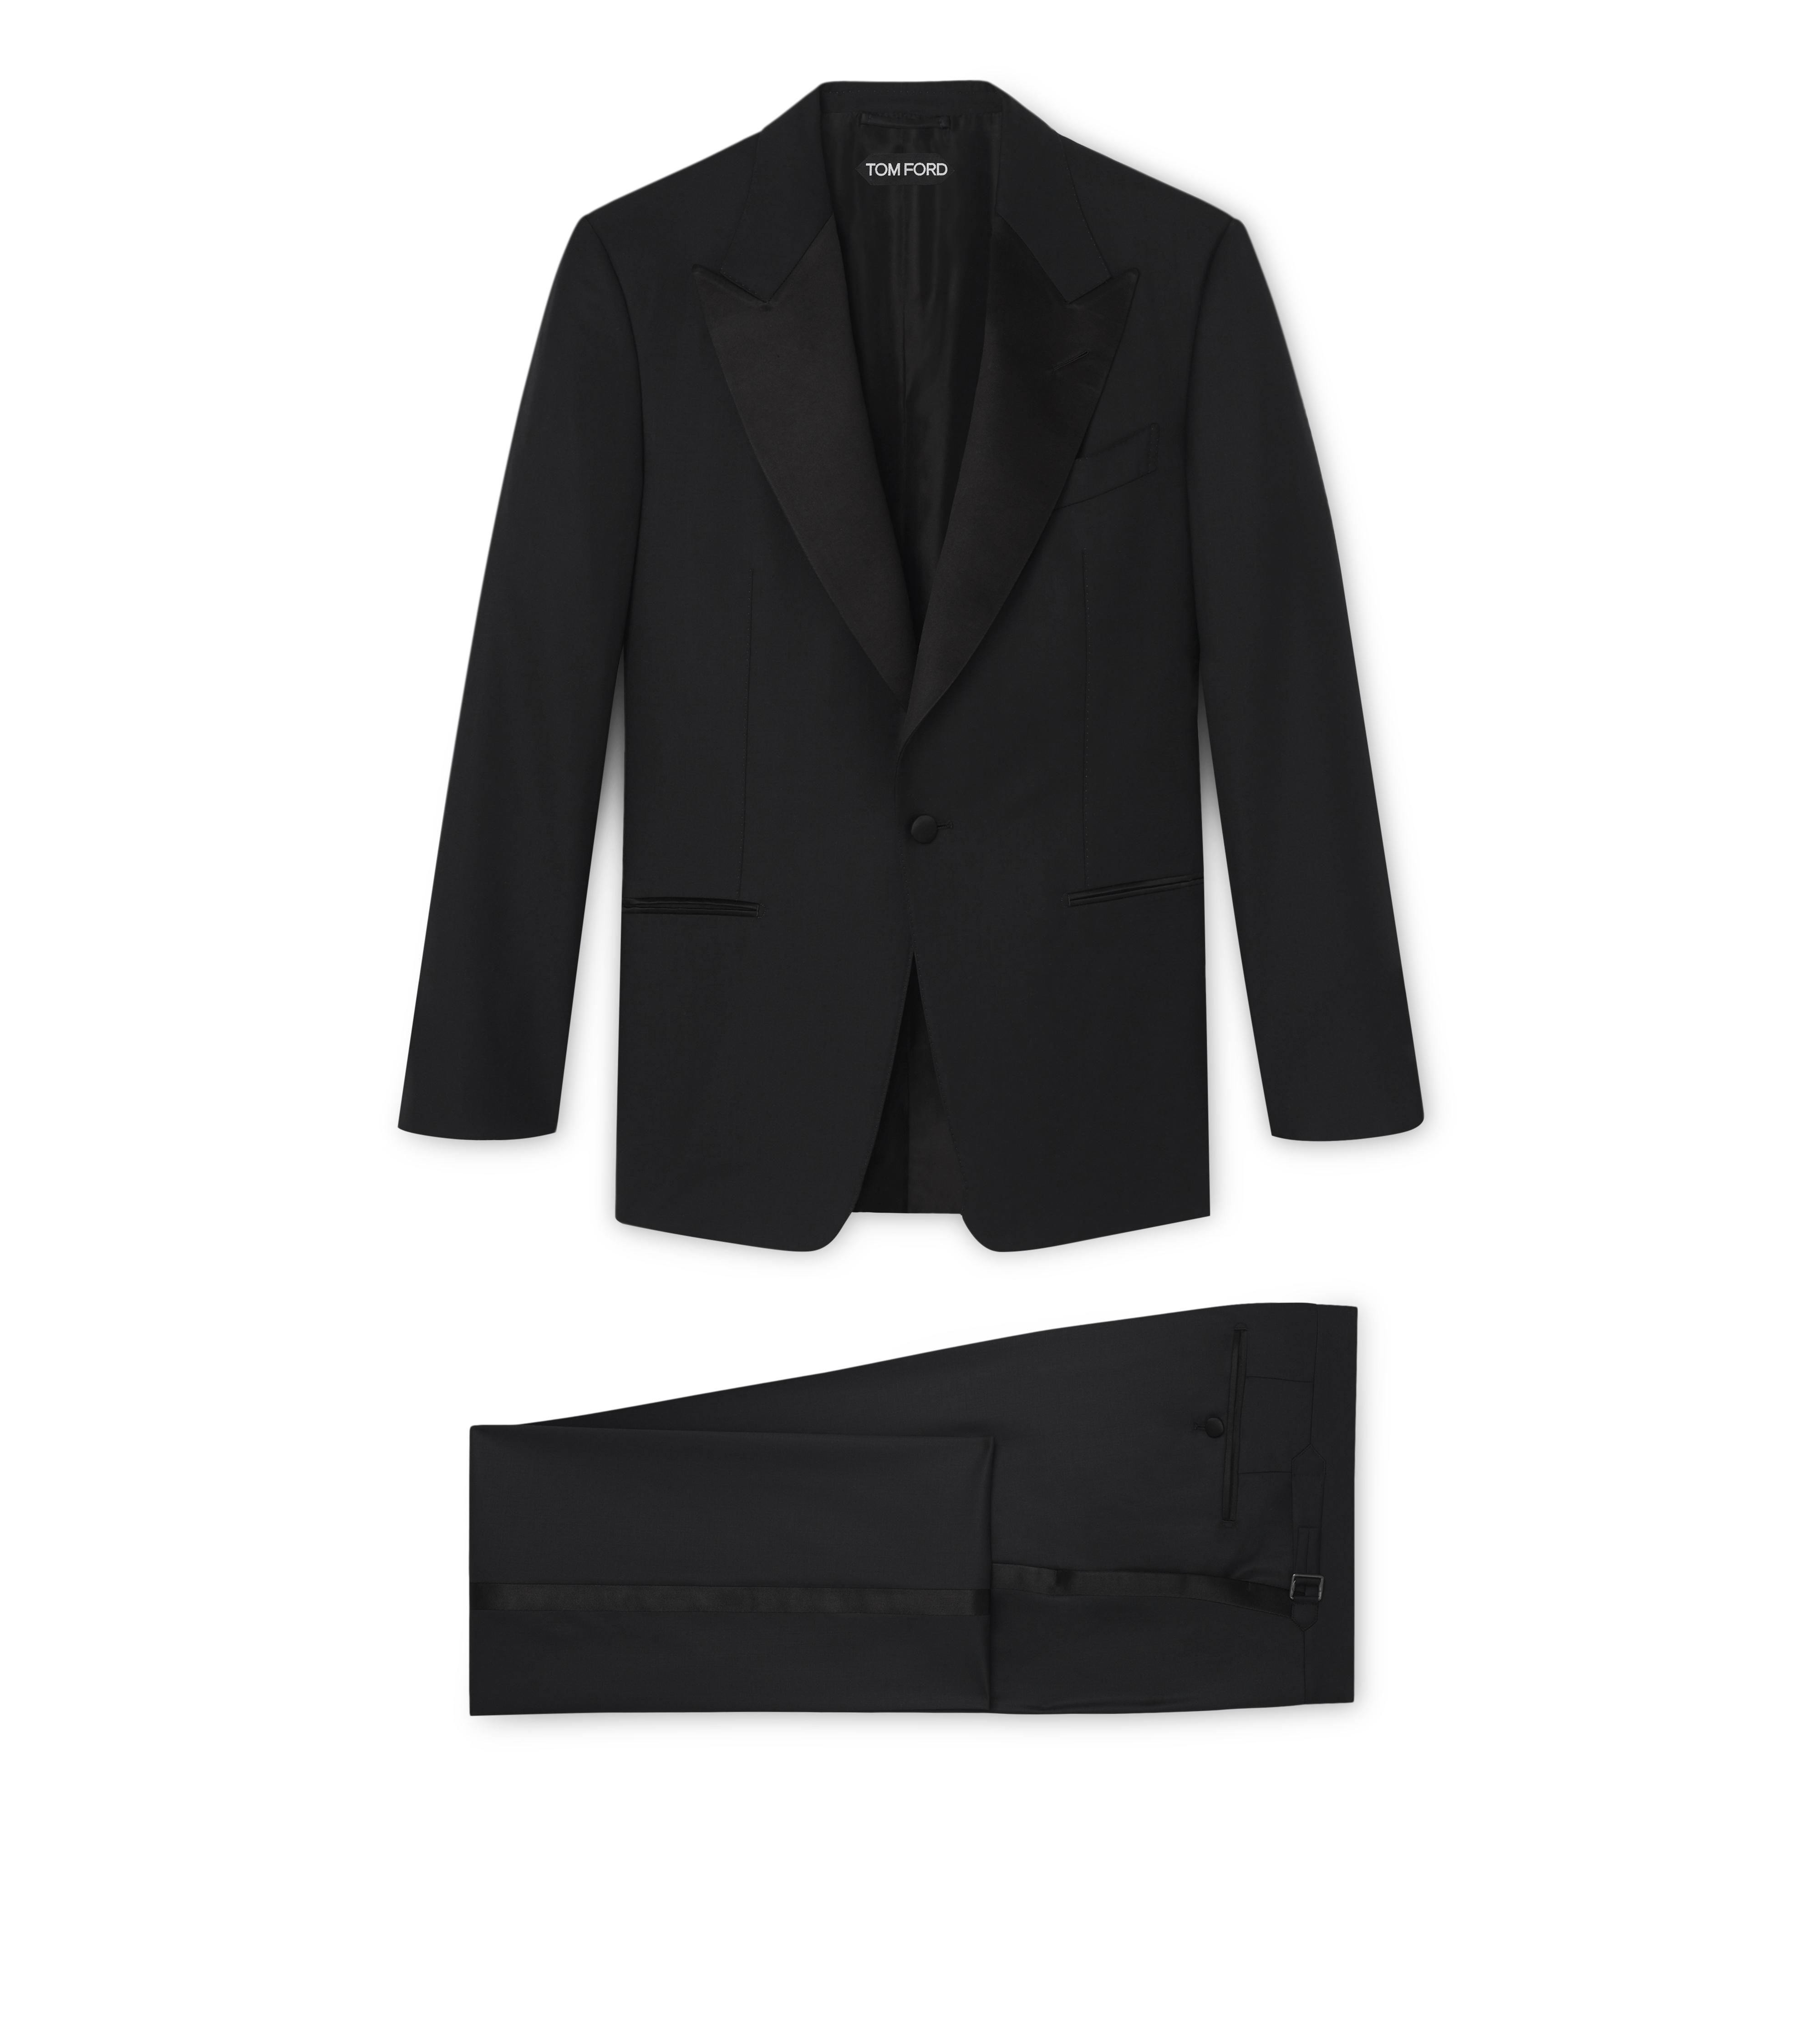 WINDSOR SUIT WITH SATIN PEAK LAPEL A thumbnail